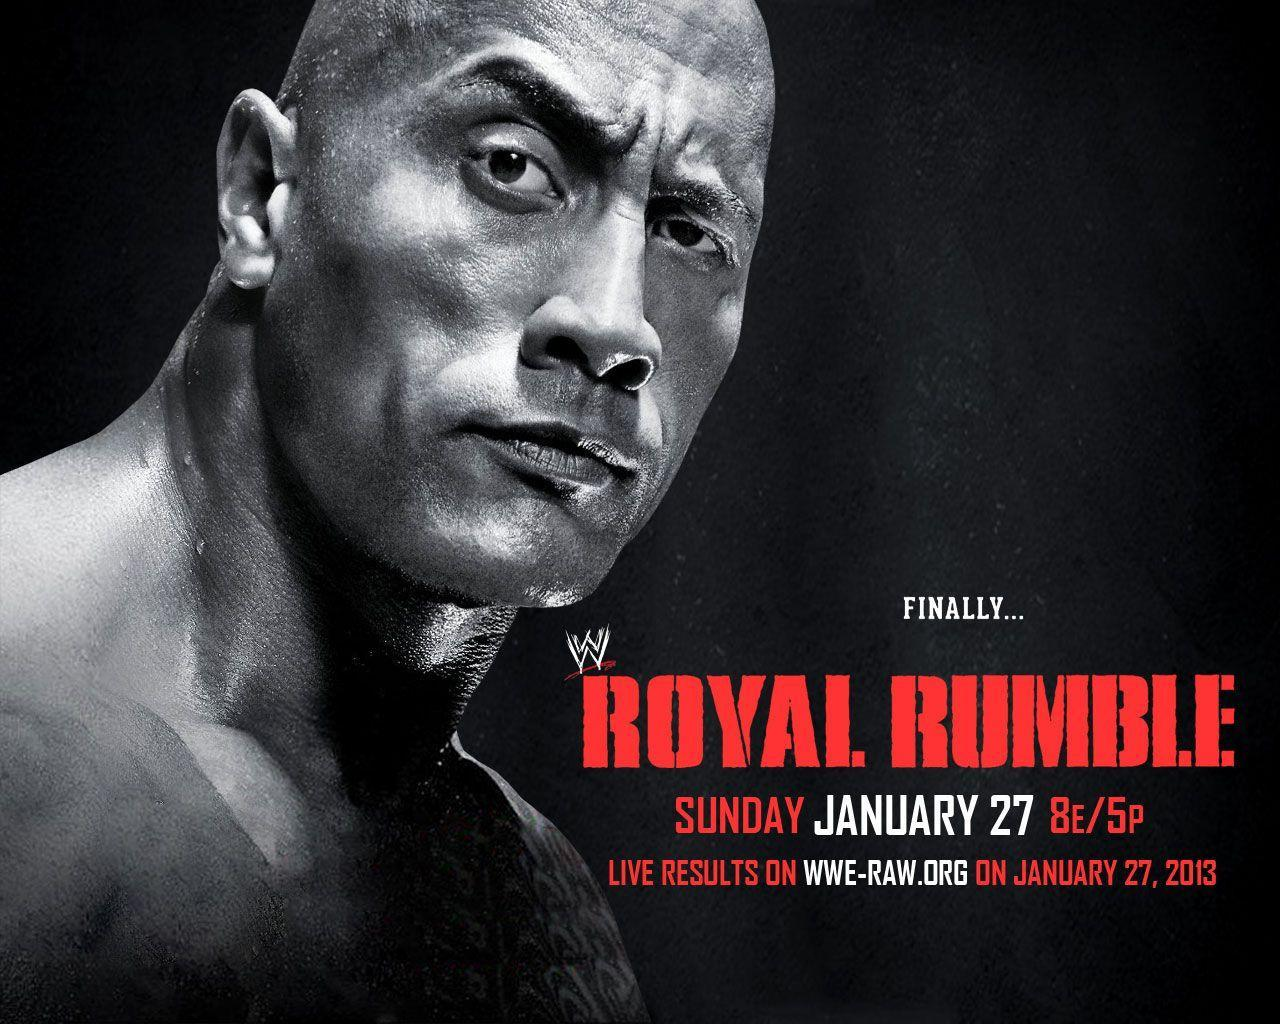 WWE Royal Rumble 2013 Photos Wallpapers Promo Videos | A Sports News